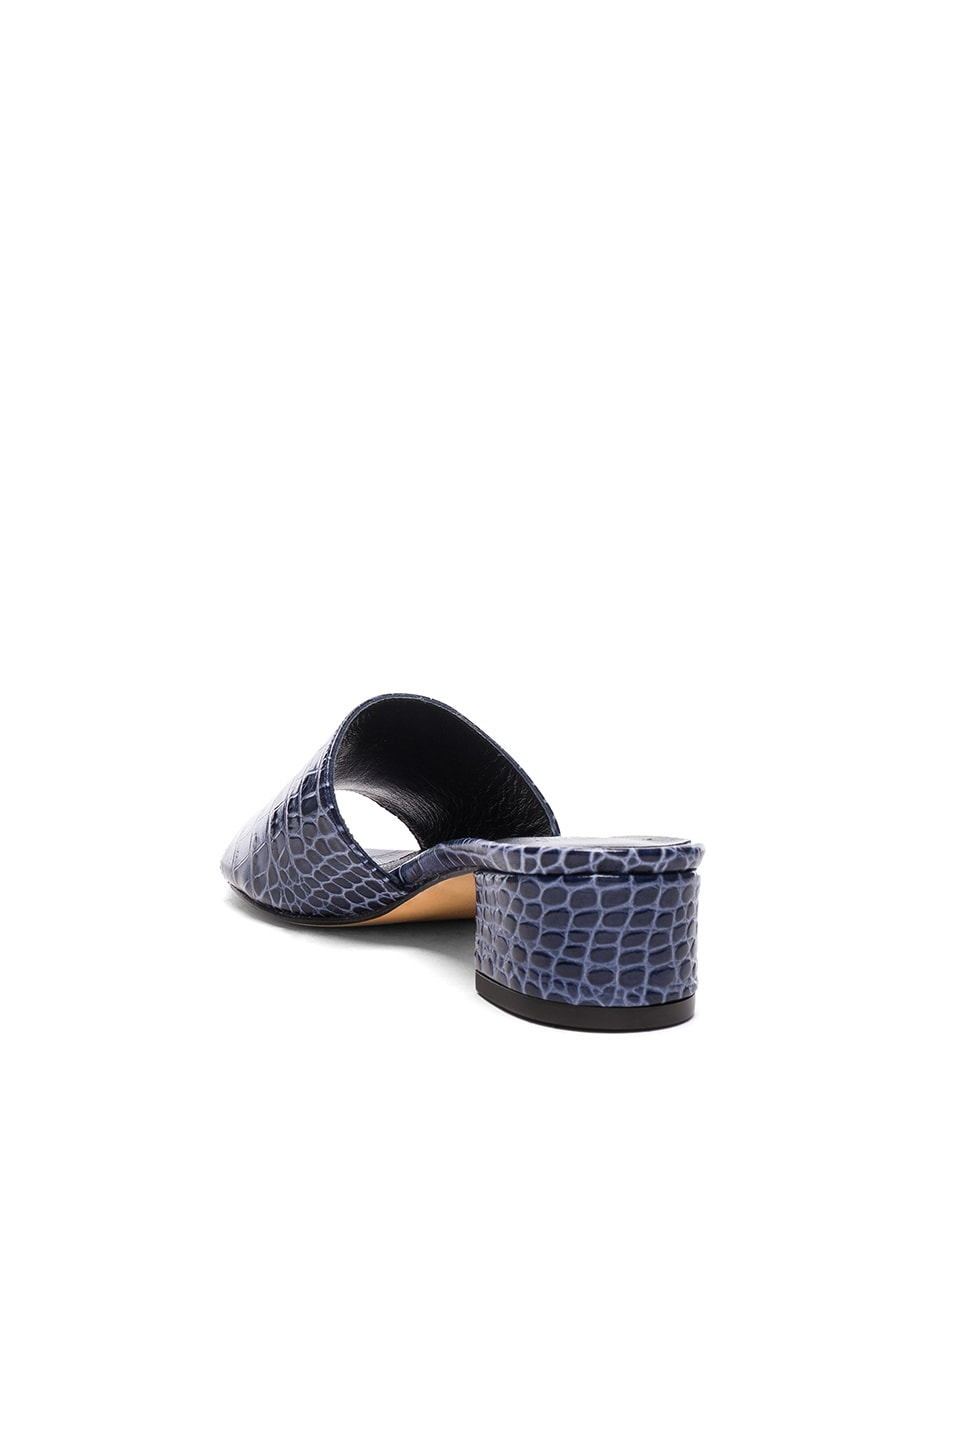 Image 3 of Maryam Nassir Zadeh Leather Sophie Slide Heels in Navy Faux Croc